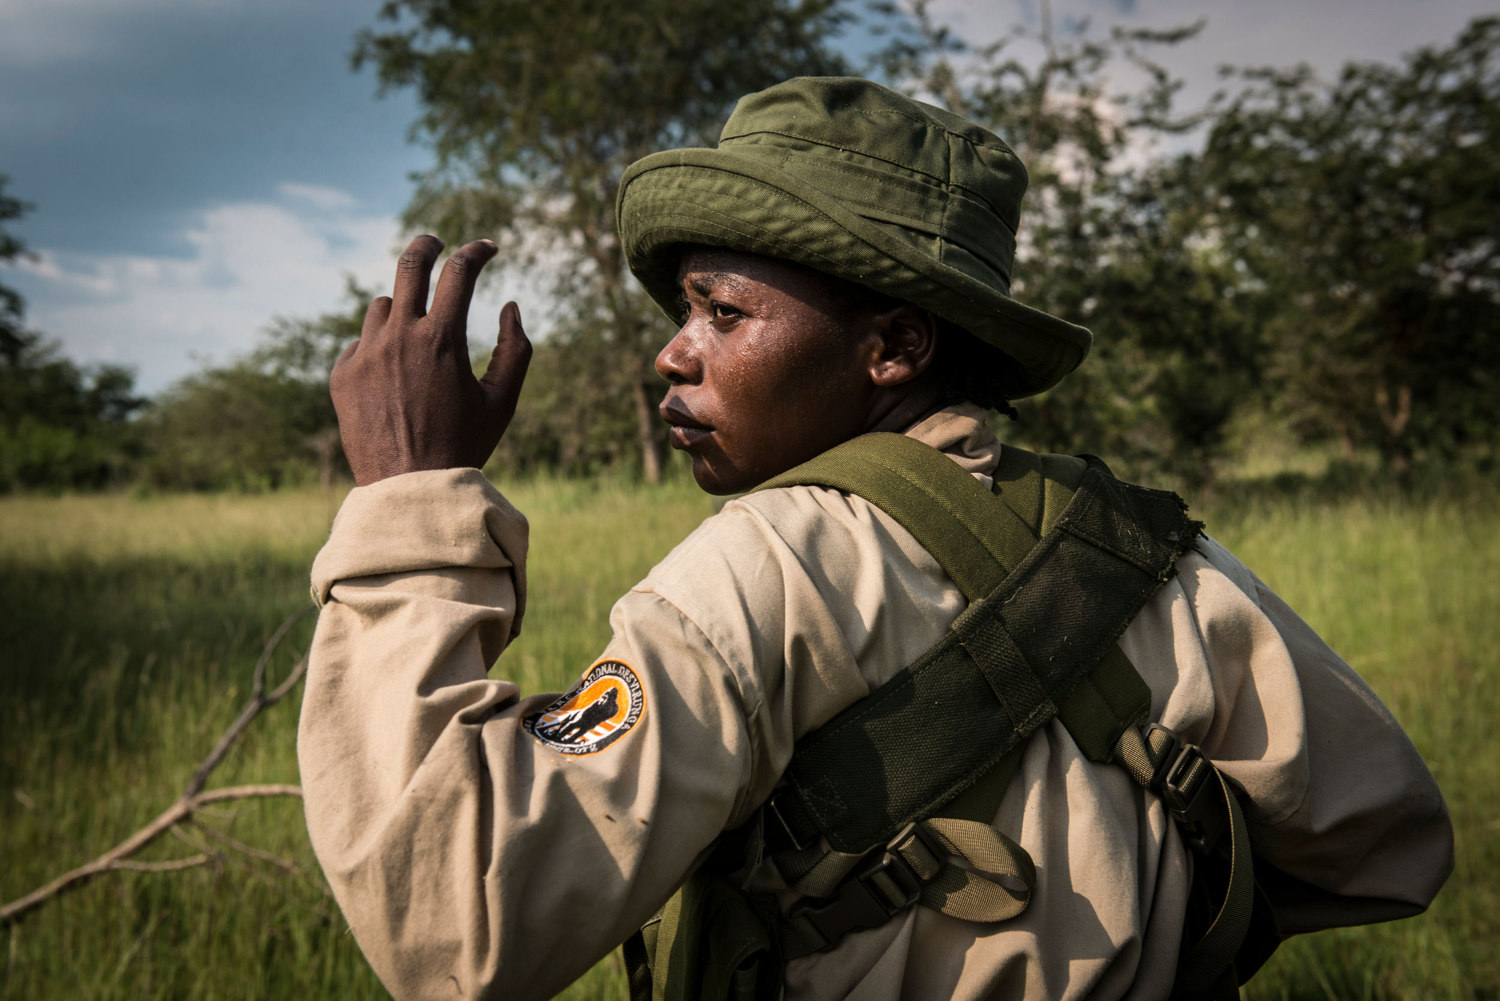 Rangers-in-Training during military style drills in the savannah. Patrols can last up to 6 hours in the scorching heat. Virunga's park guards responsibilities eclipse those of a typical park guard as the area is known to have incidents with local rebel groups.